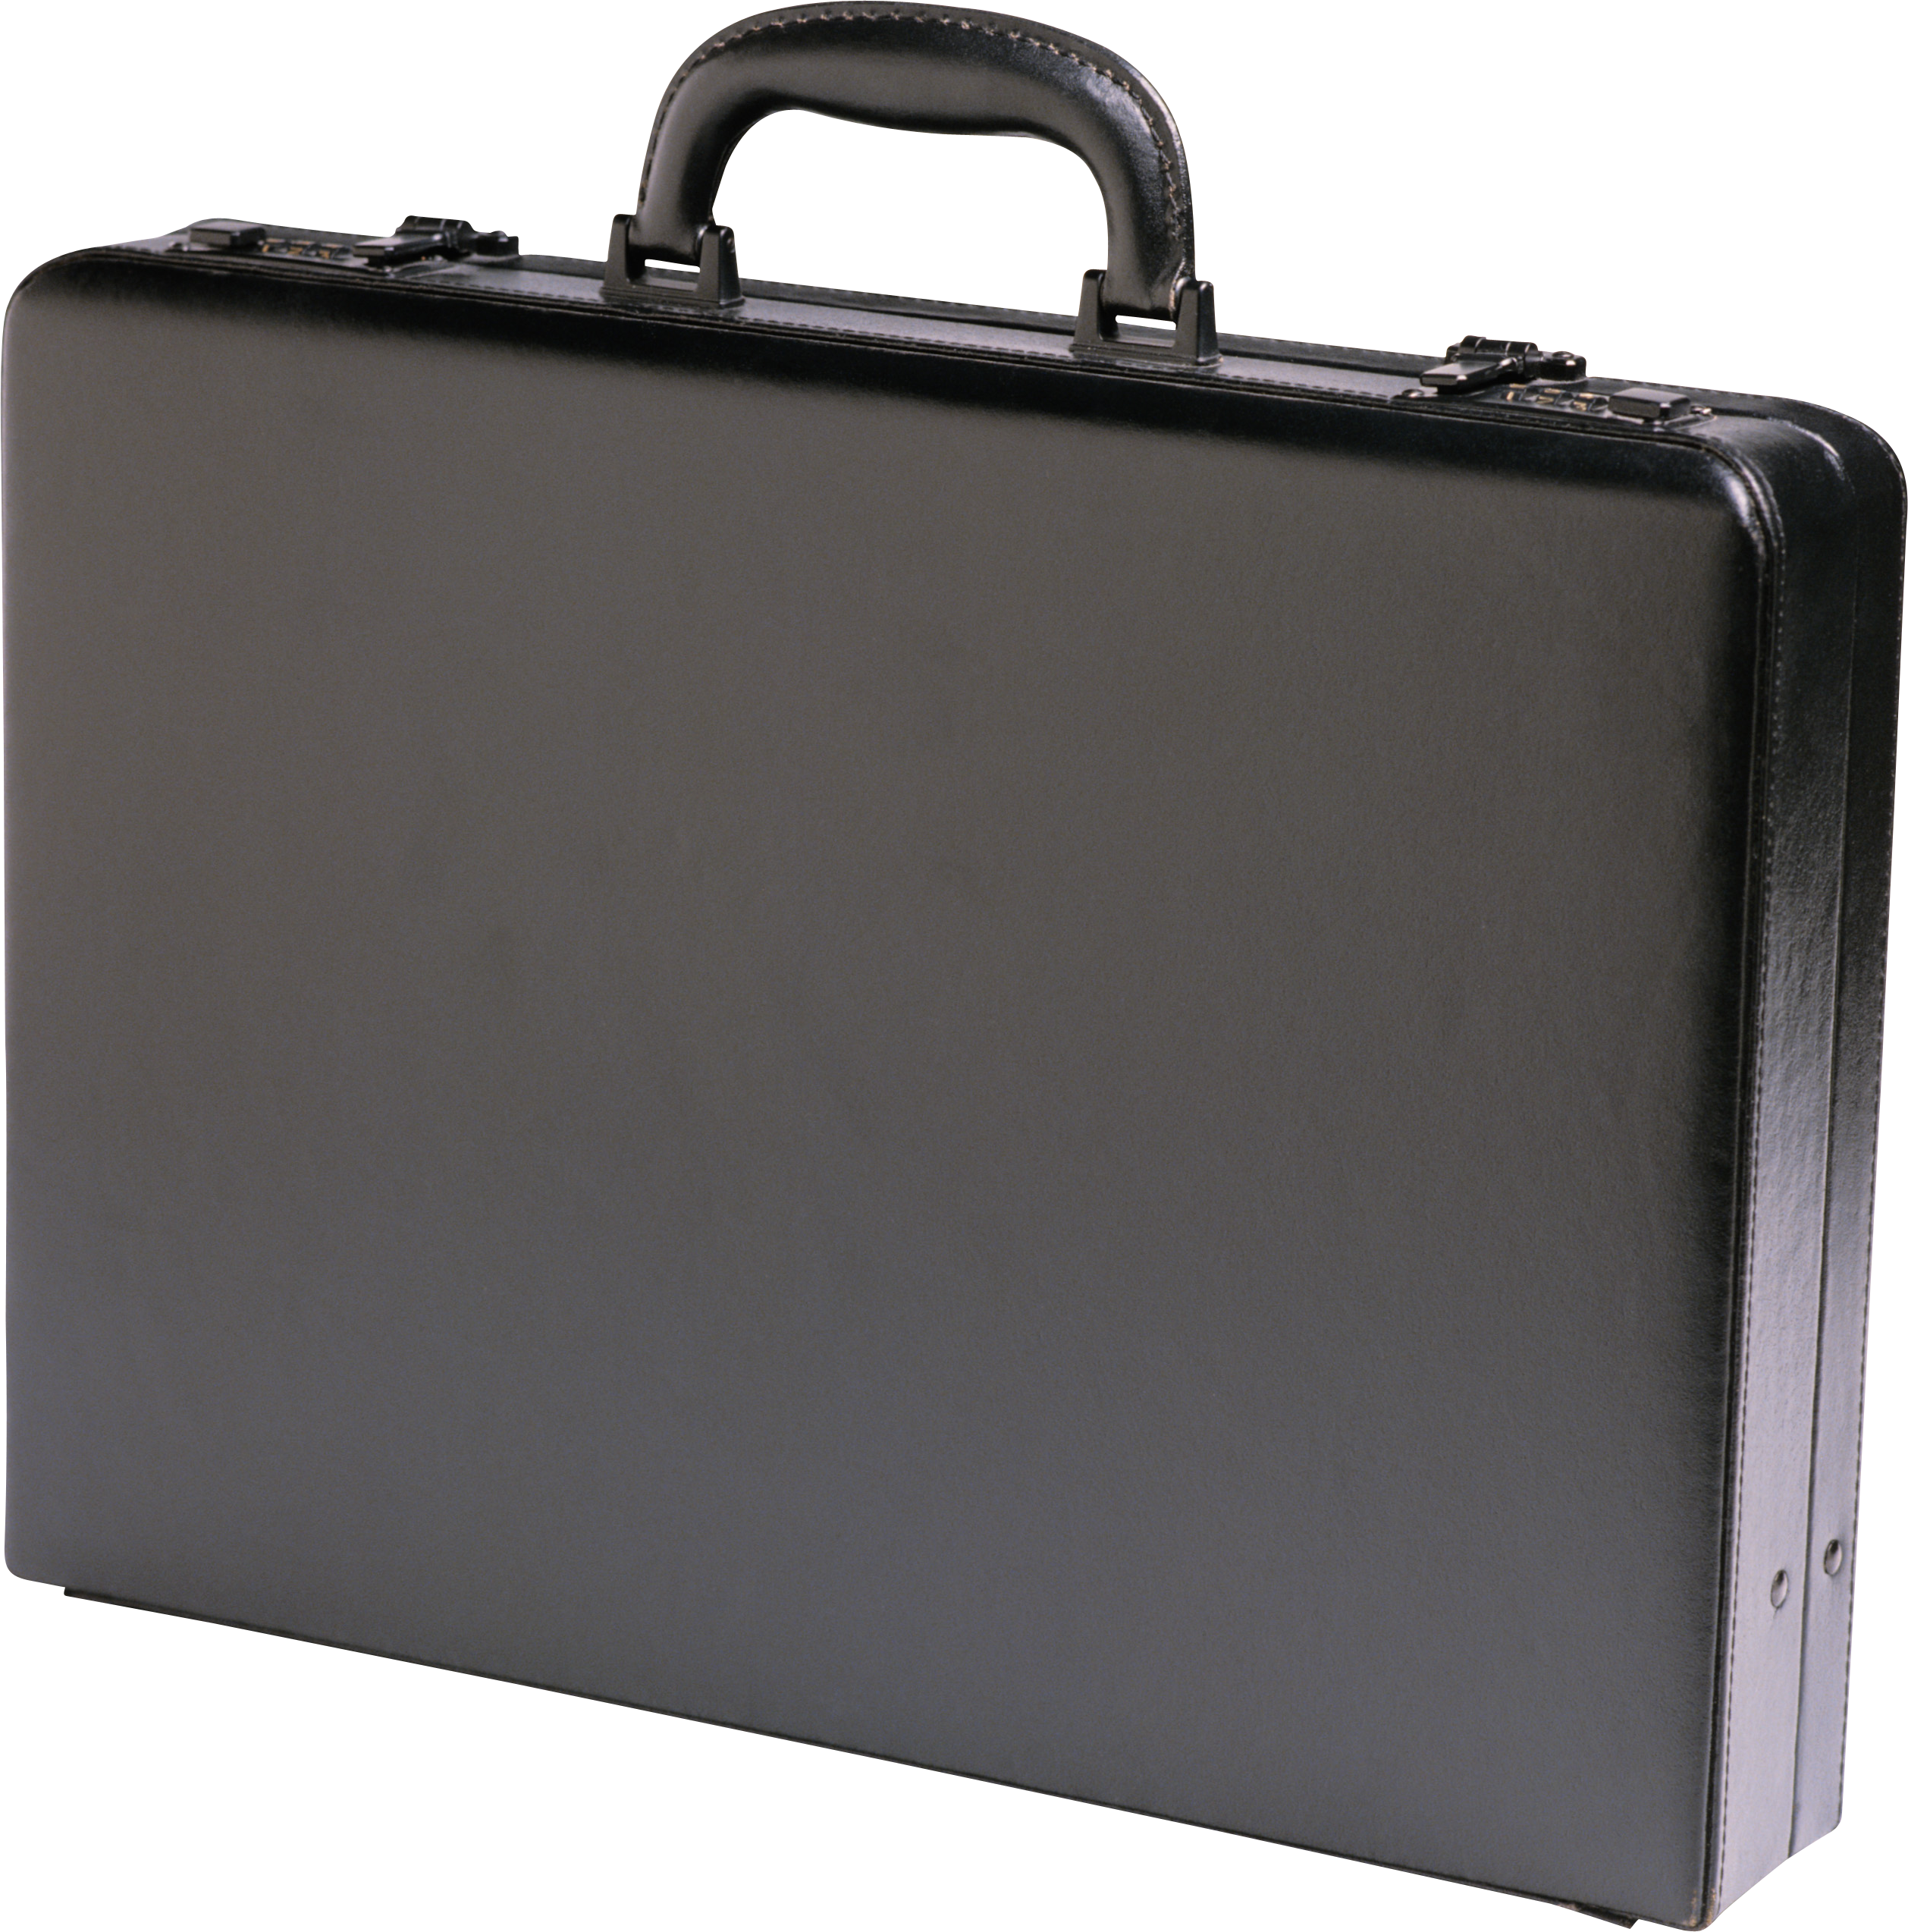 Suitcase png images free. Luggage clipart business